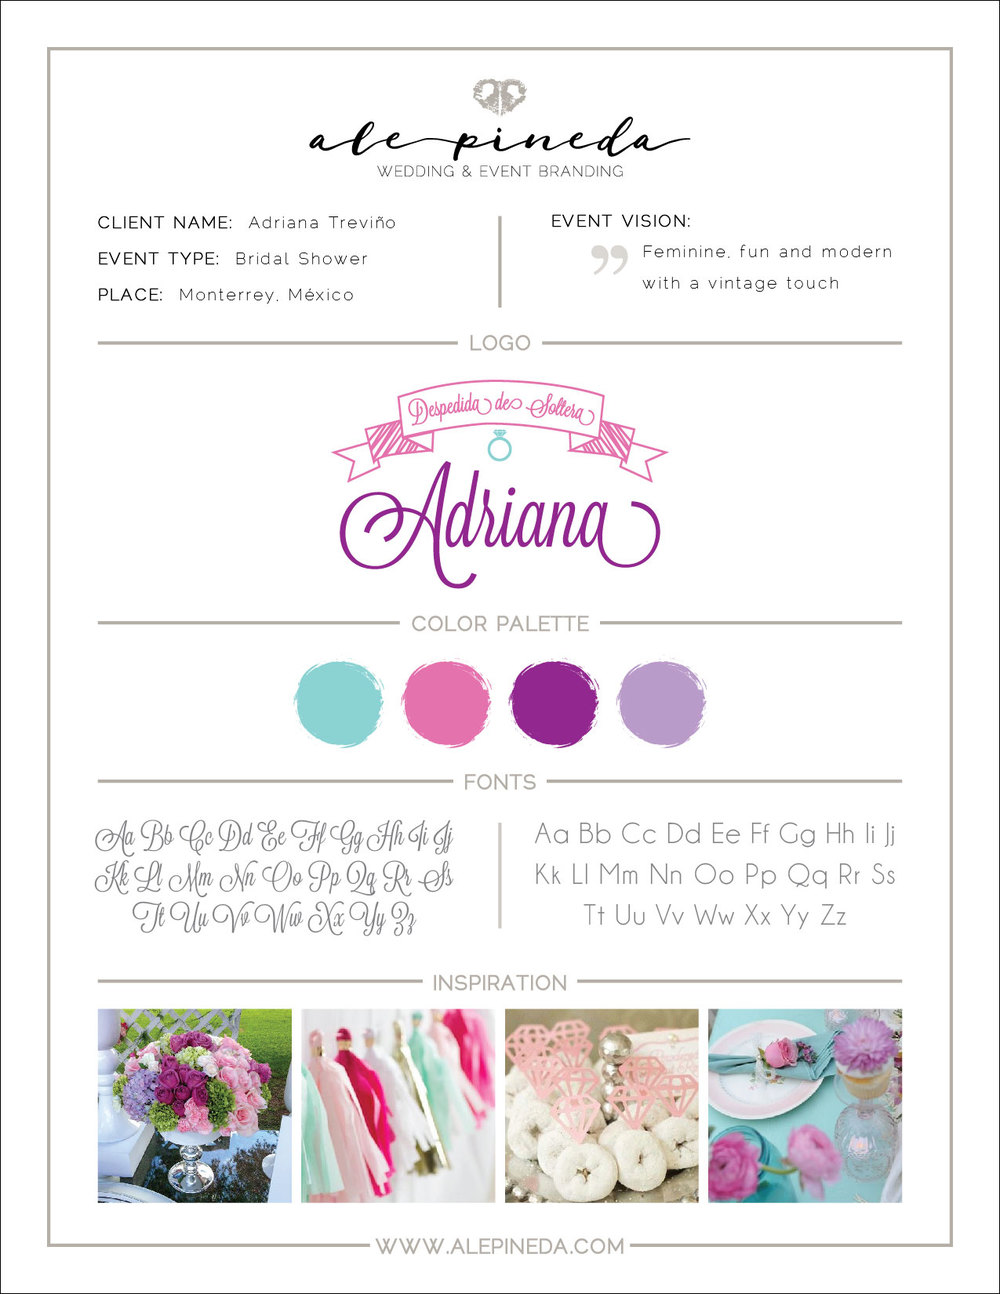 Bridal Shower branding, feminine, fun and modern with a vintage touch. Purple, aqua, pink, lilac